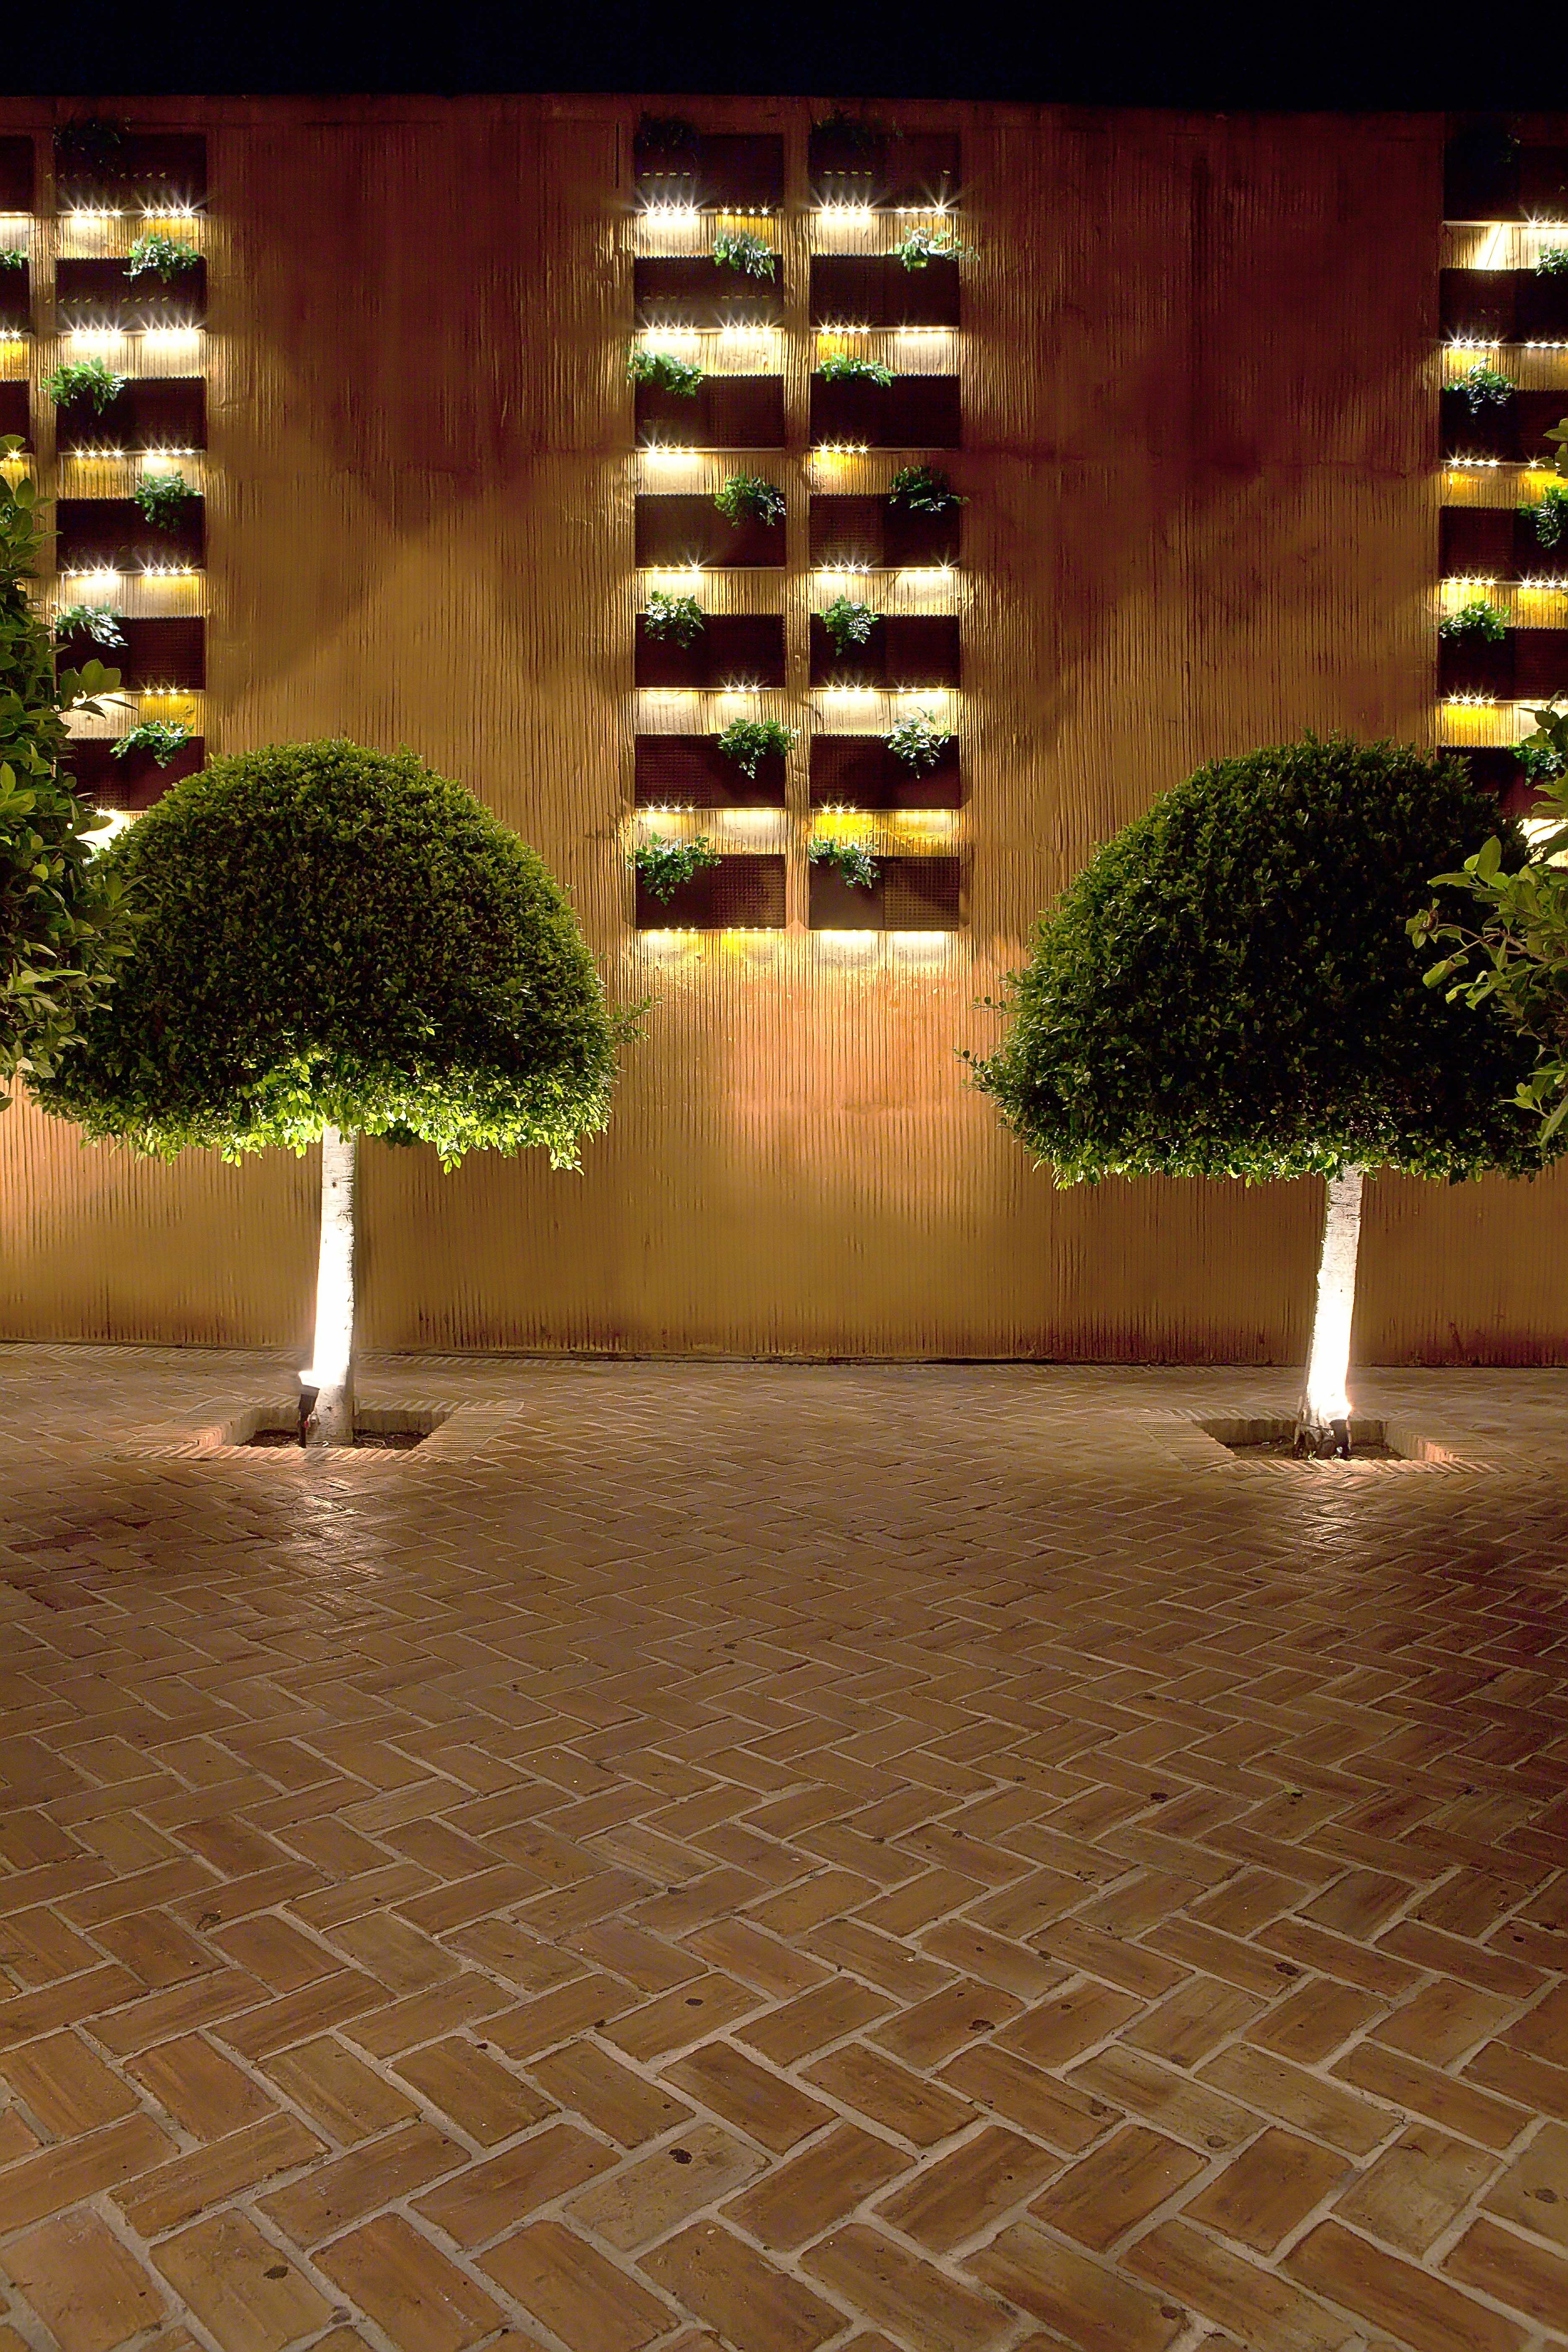 Ideas de paisajismo de patio estilo vanguardista for Iluminacion exterior jardin